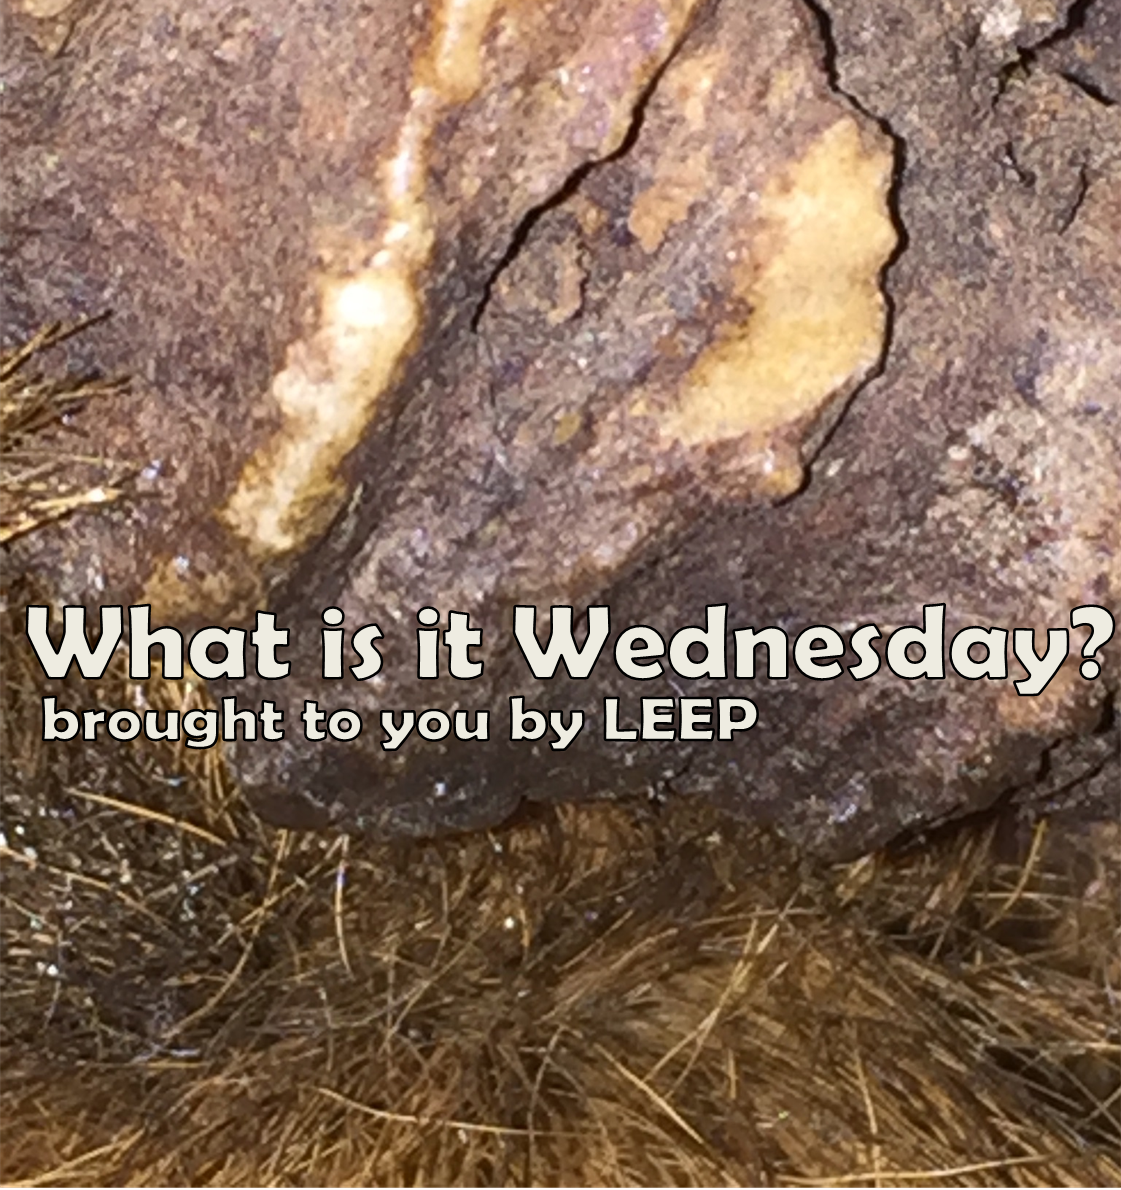 What is it Wednesday?